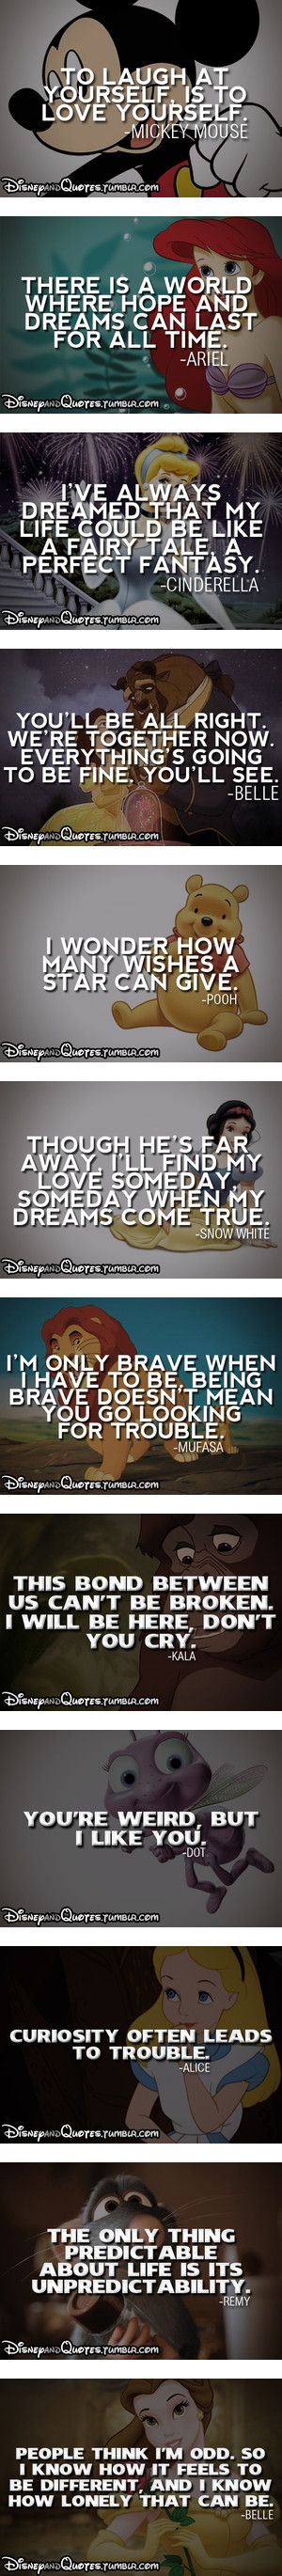 Disney Character Quotes and life lessons